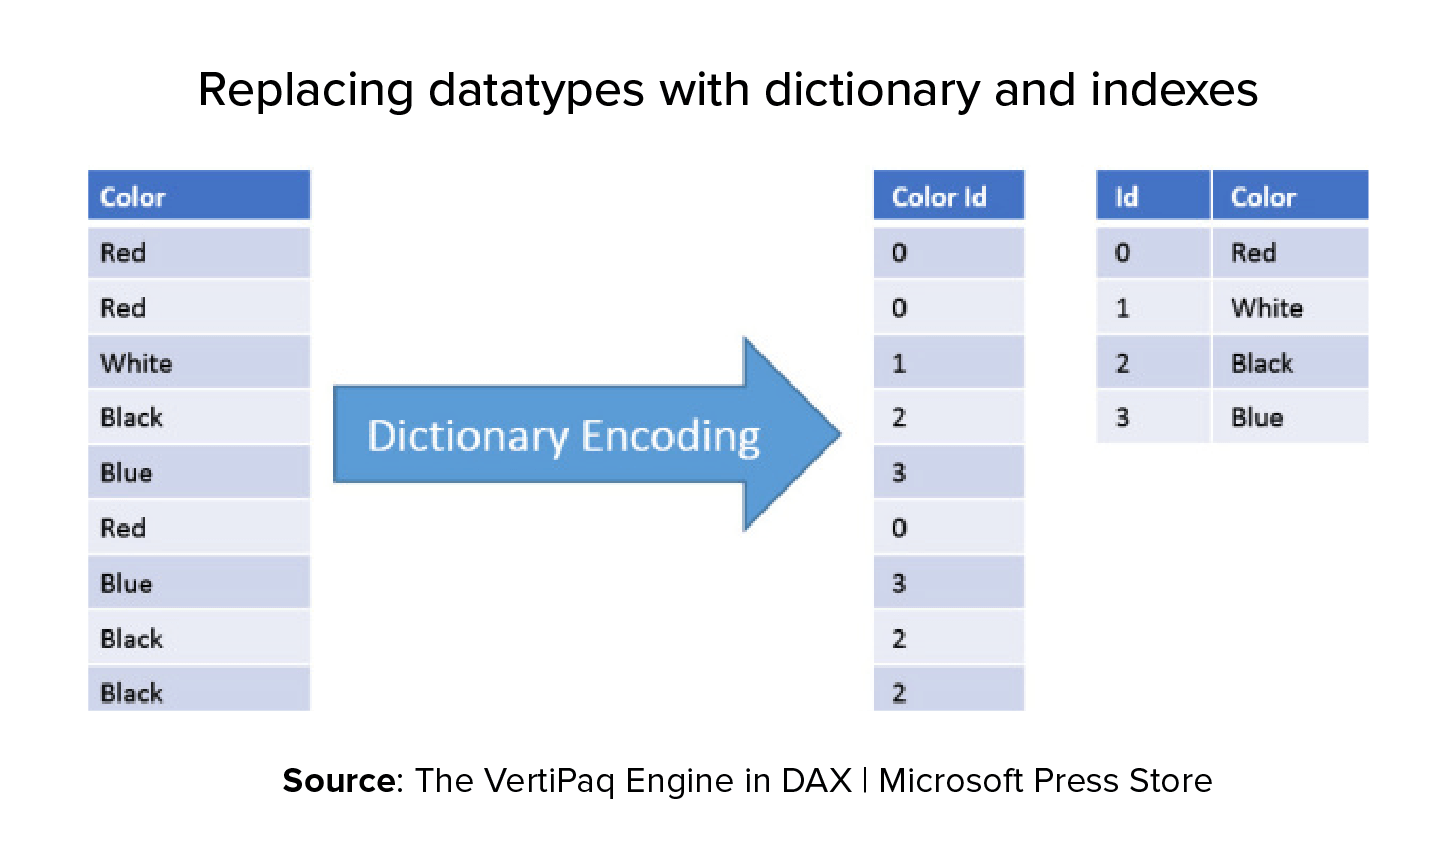 Dictonary Encoding